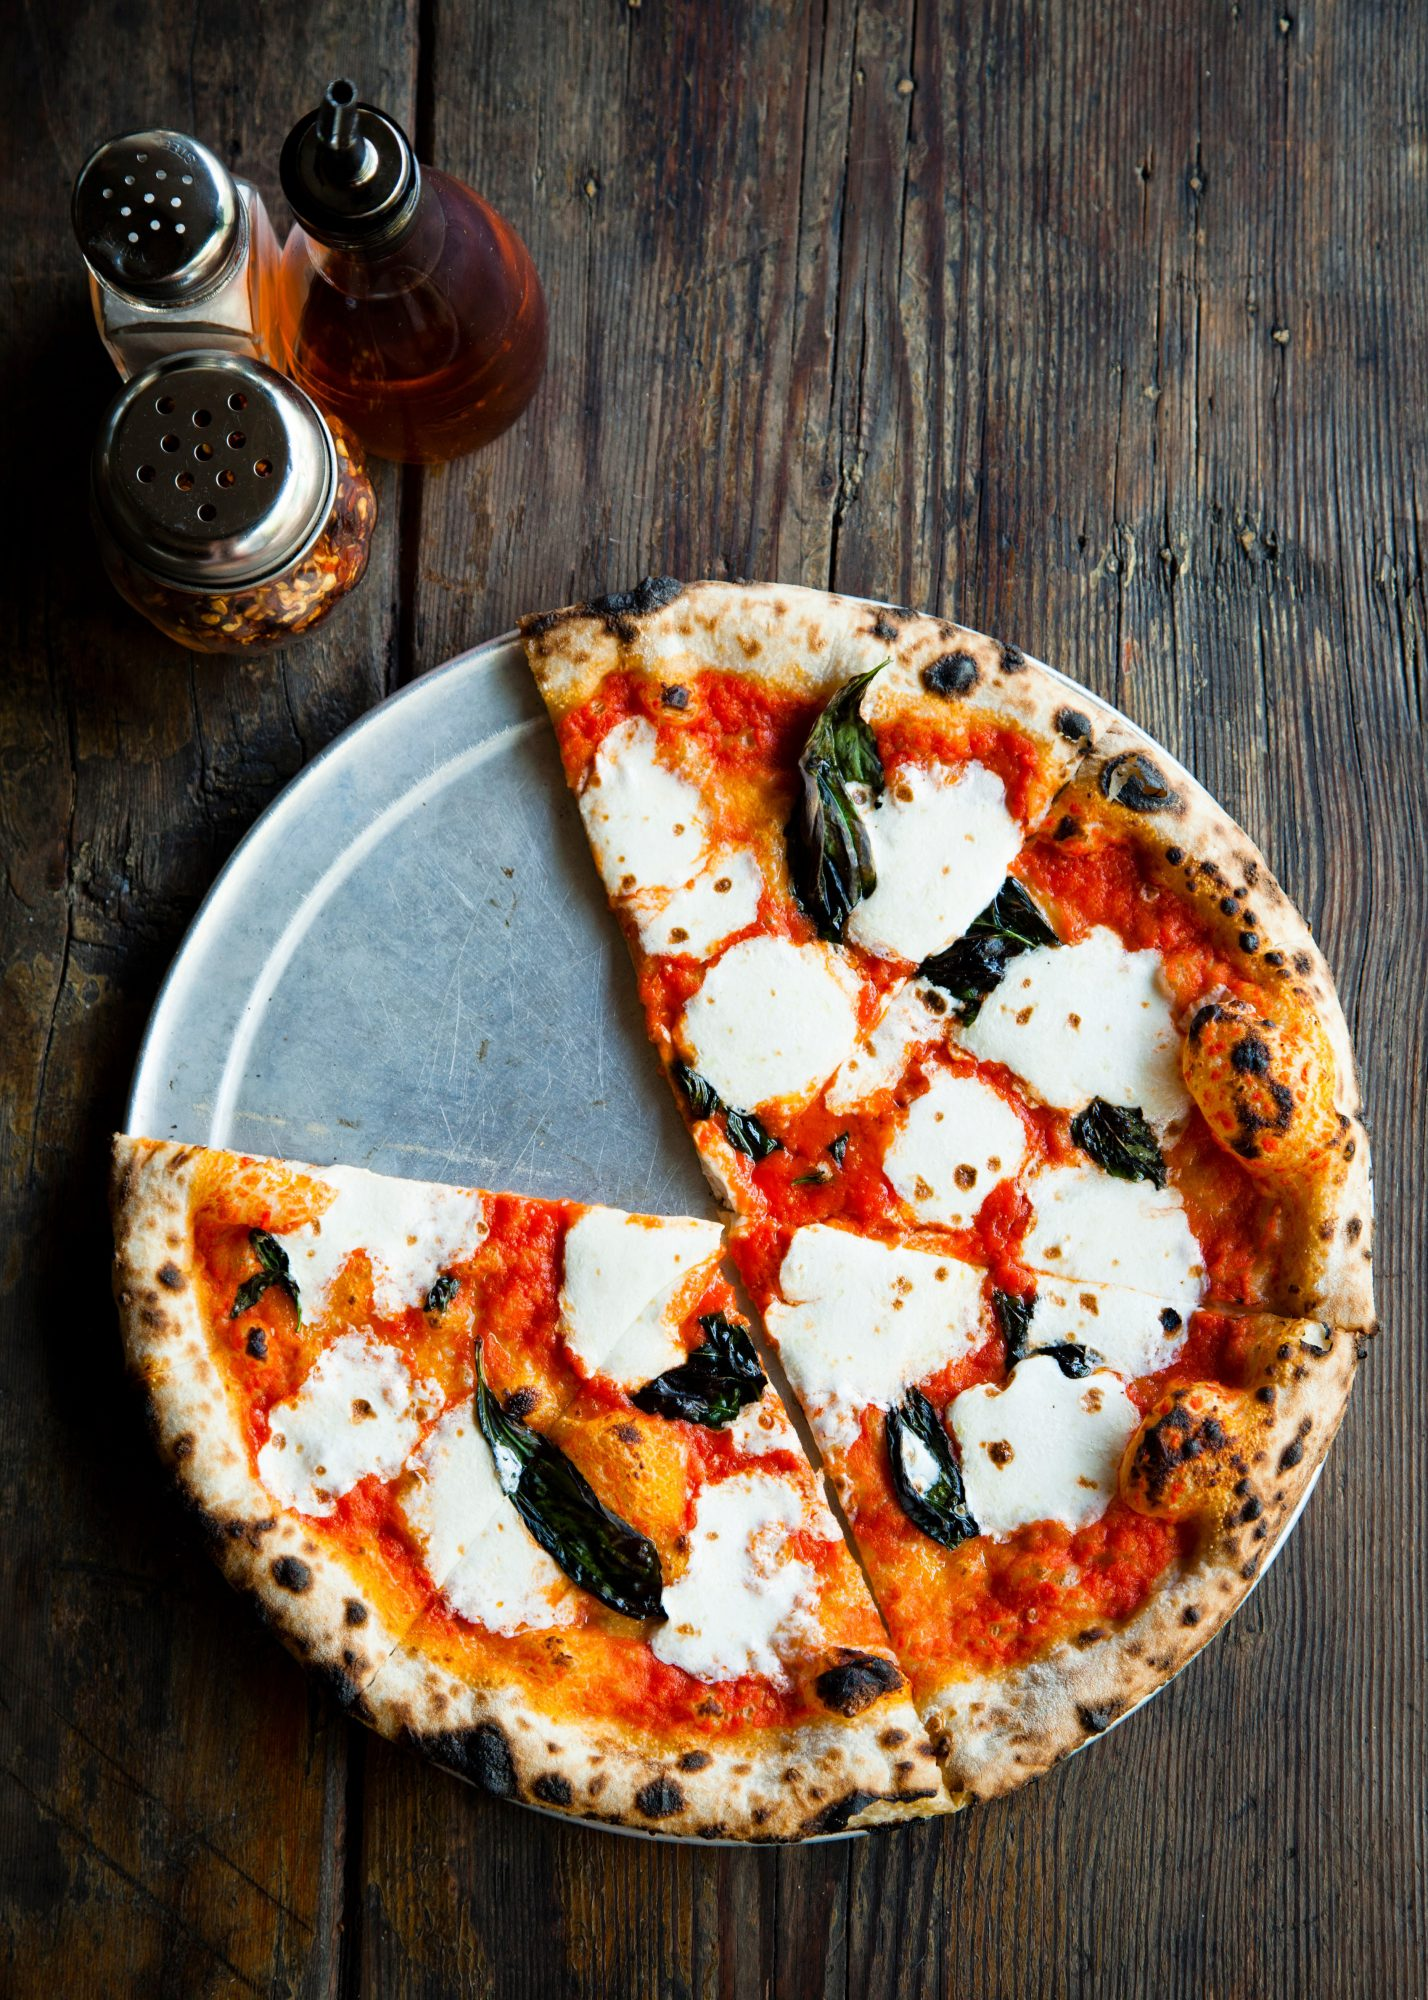 ROBERTA'S PIZZA'S MARGHERITA PIZZA